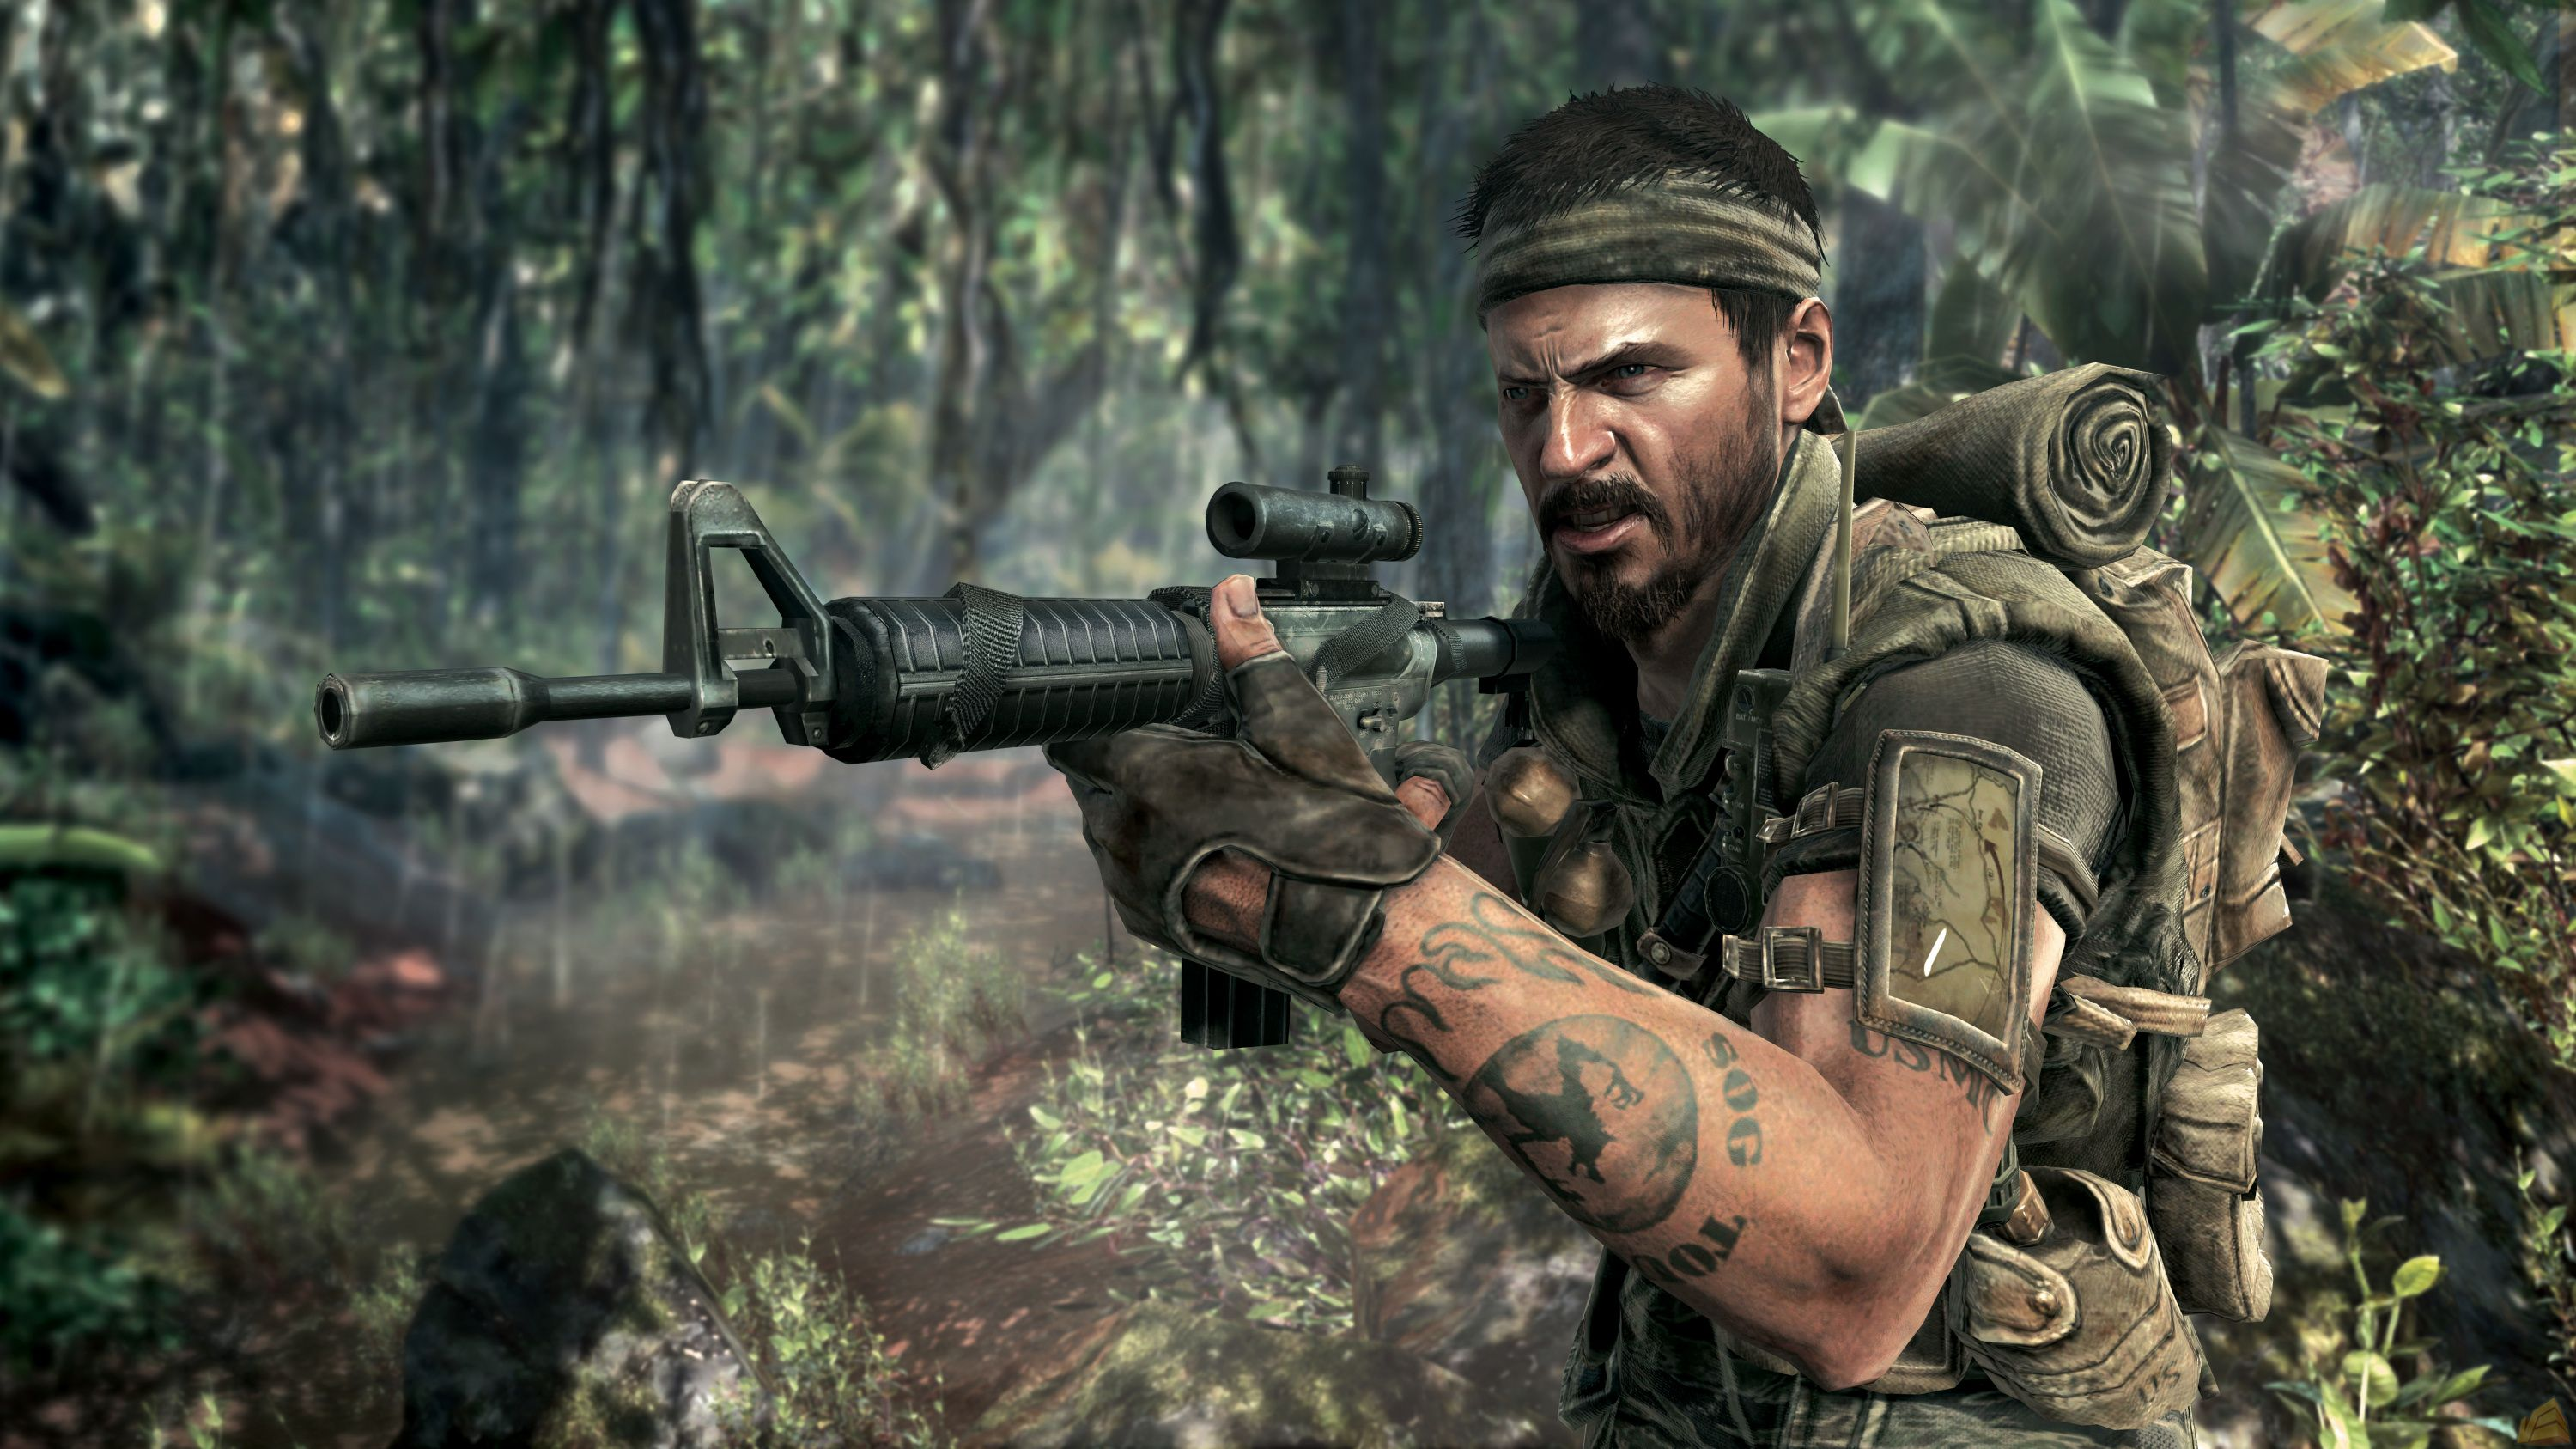 call-of-duty-black-ops-screenshot-main-character-jungle-face